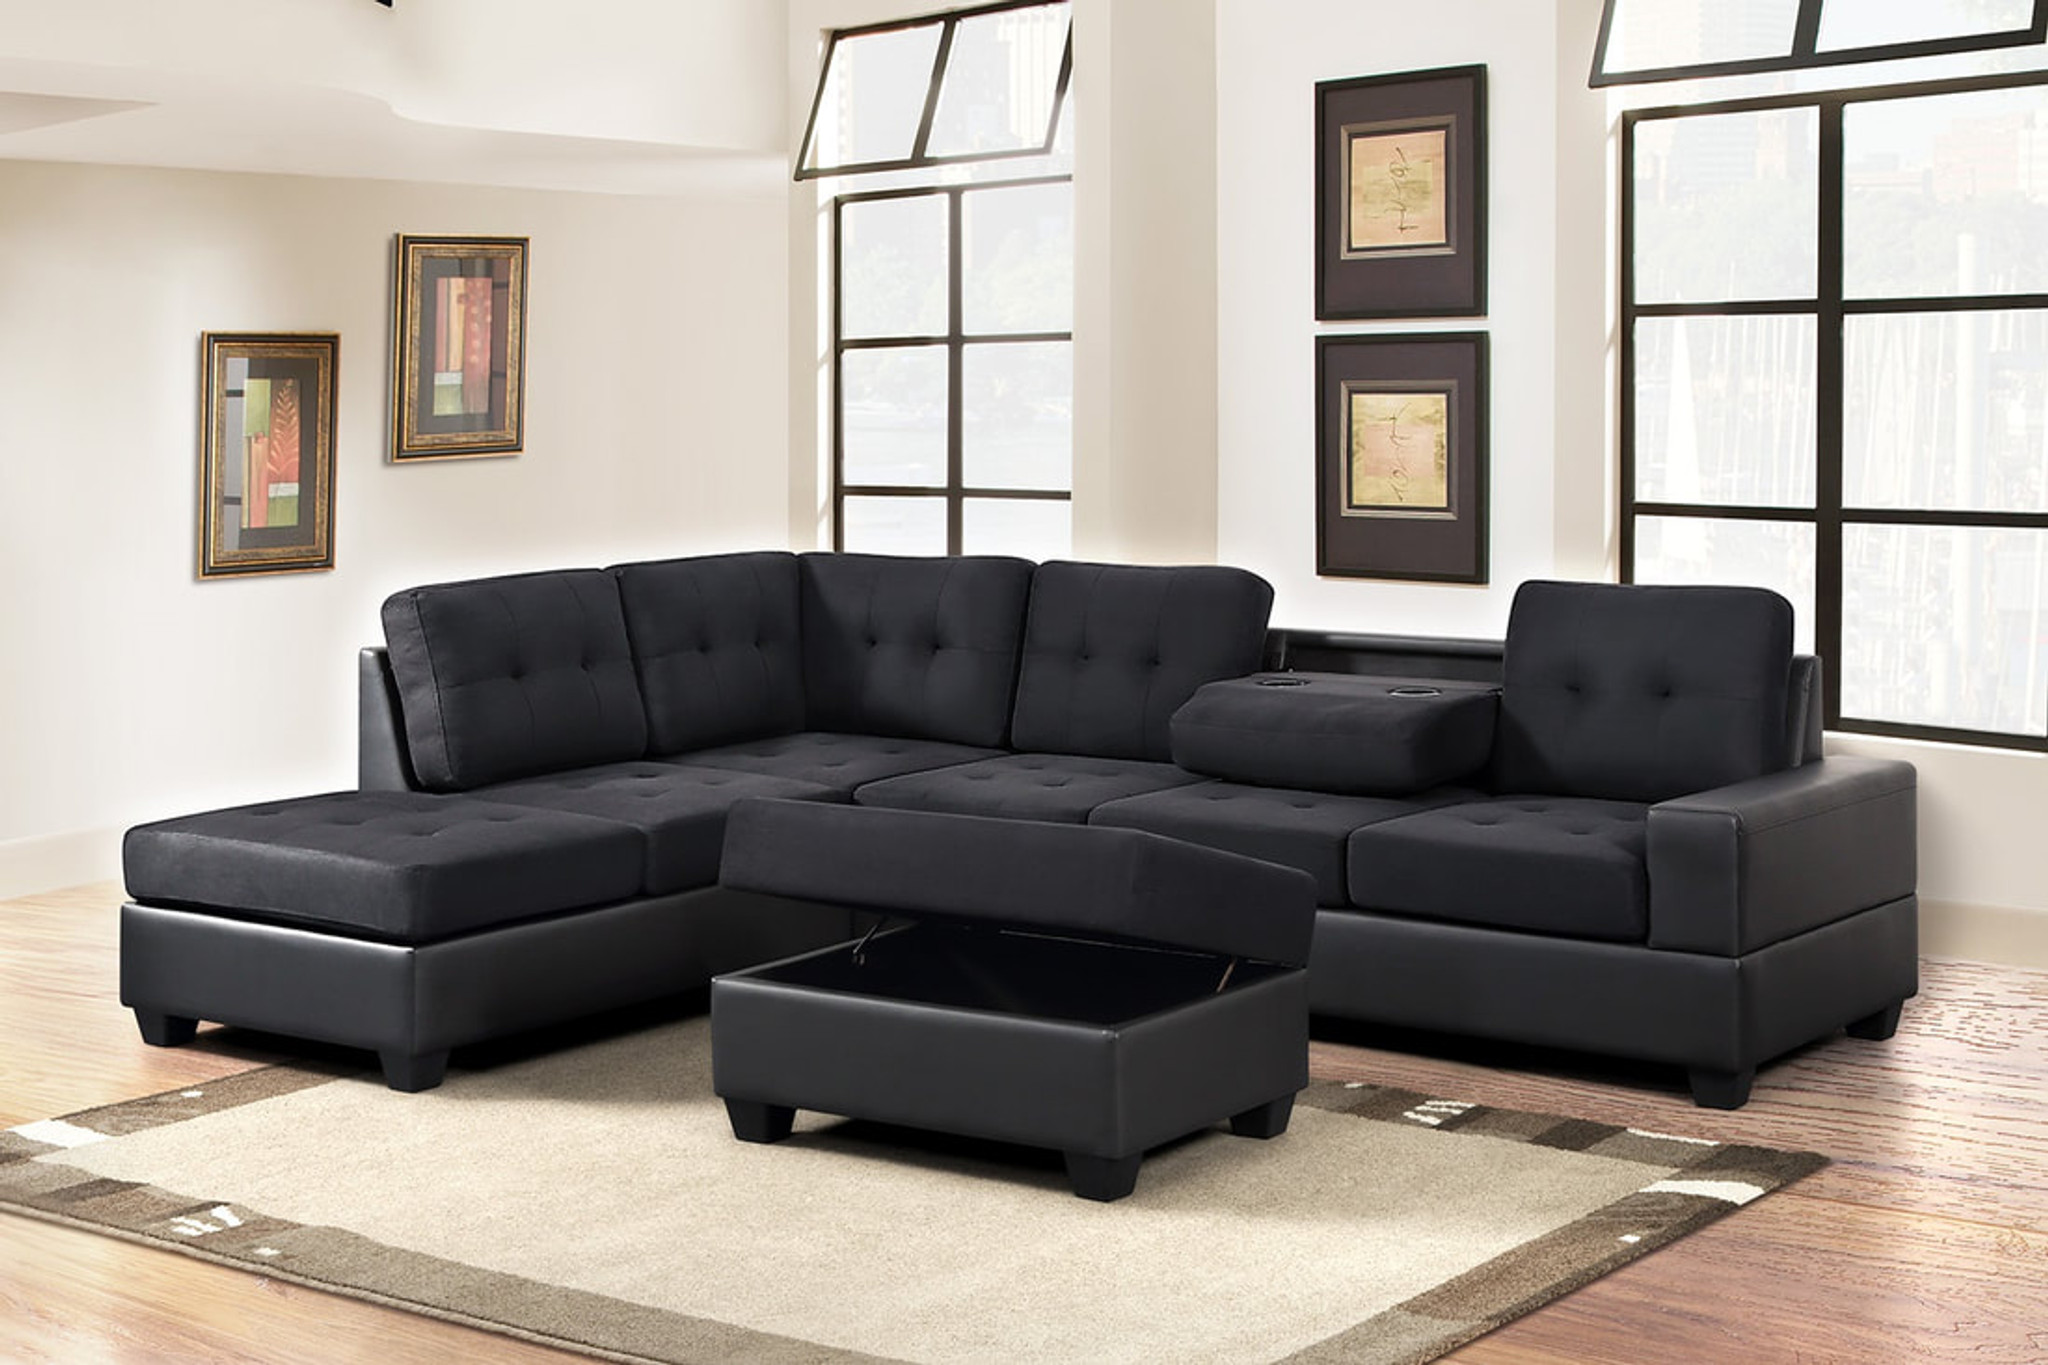 3 pcs thick fabric bonded leather black katy sectional with drop down cup ottoman